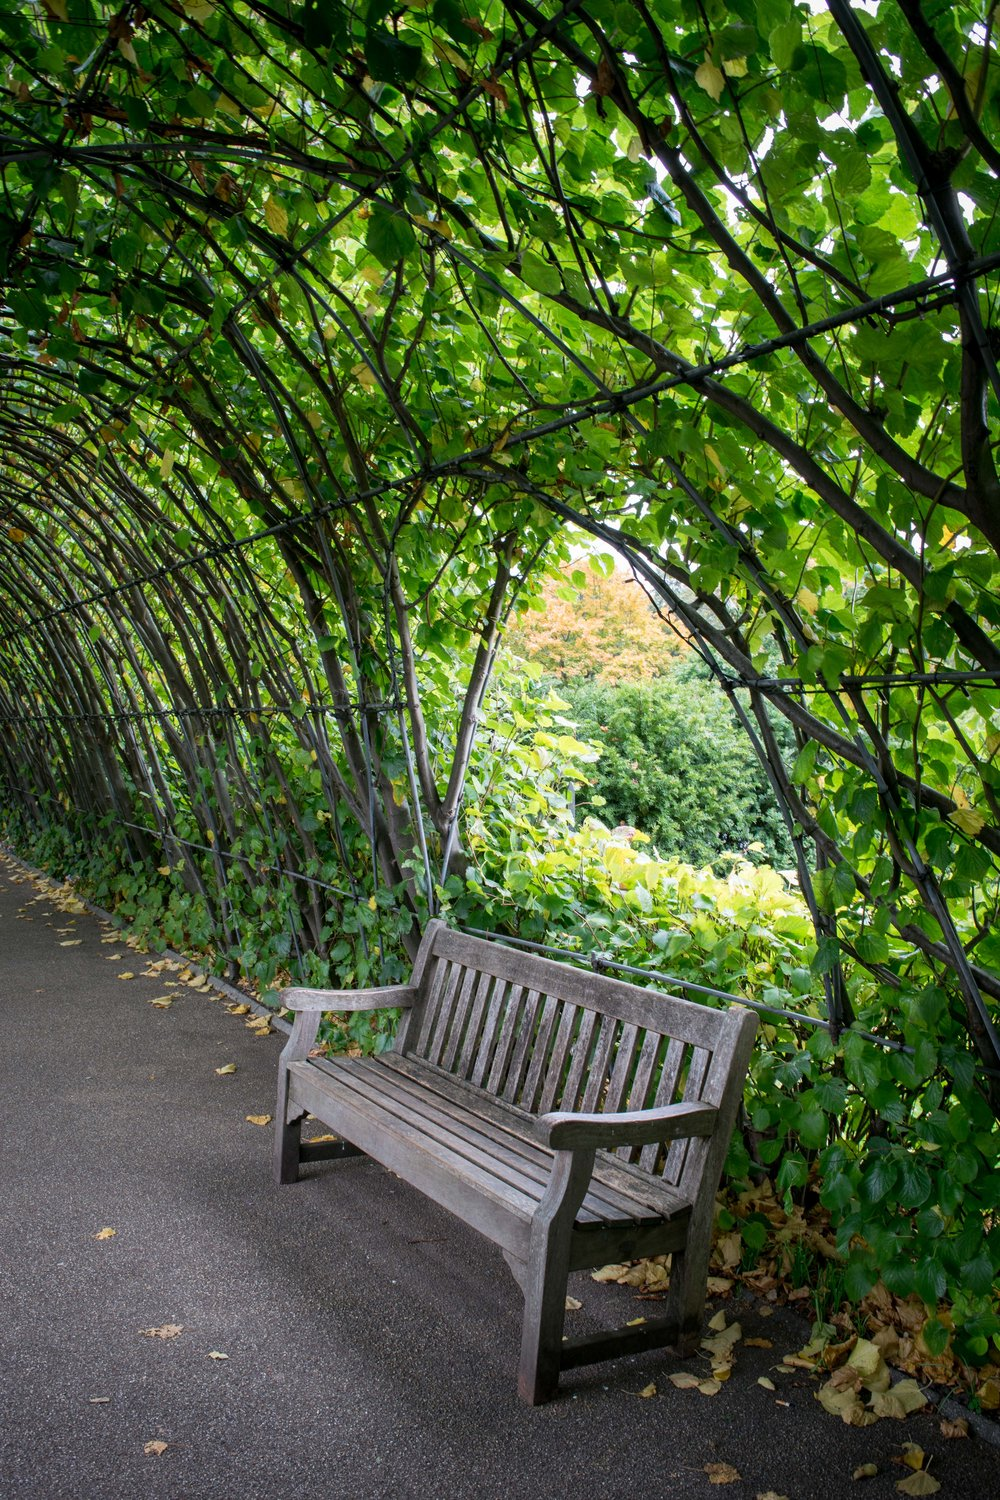 Bench in Kensington Gardens